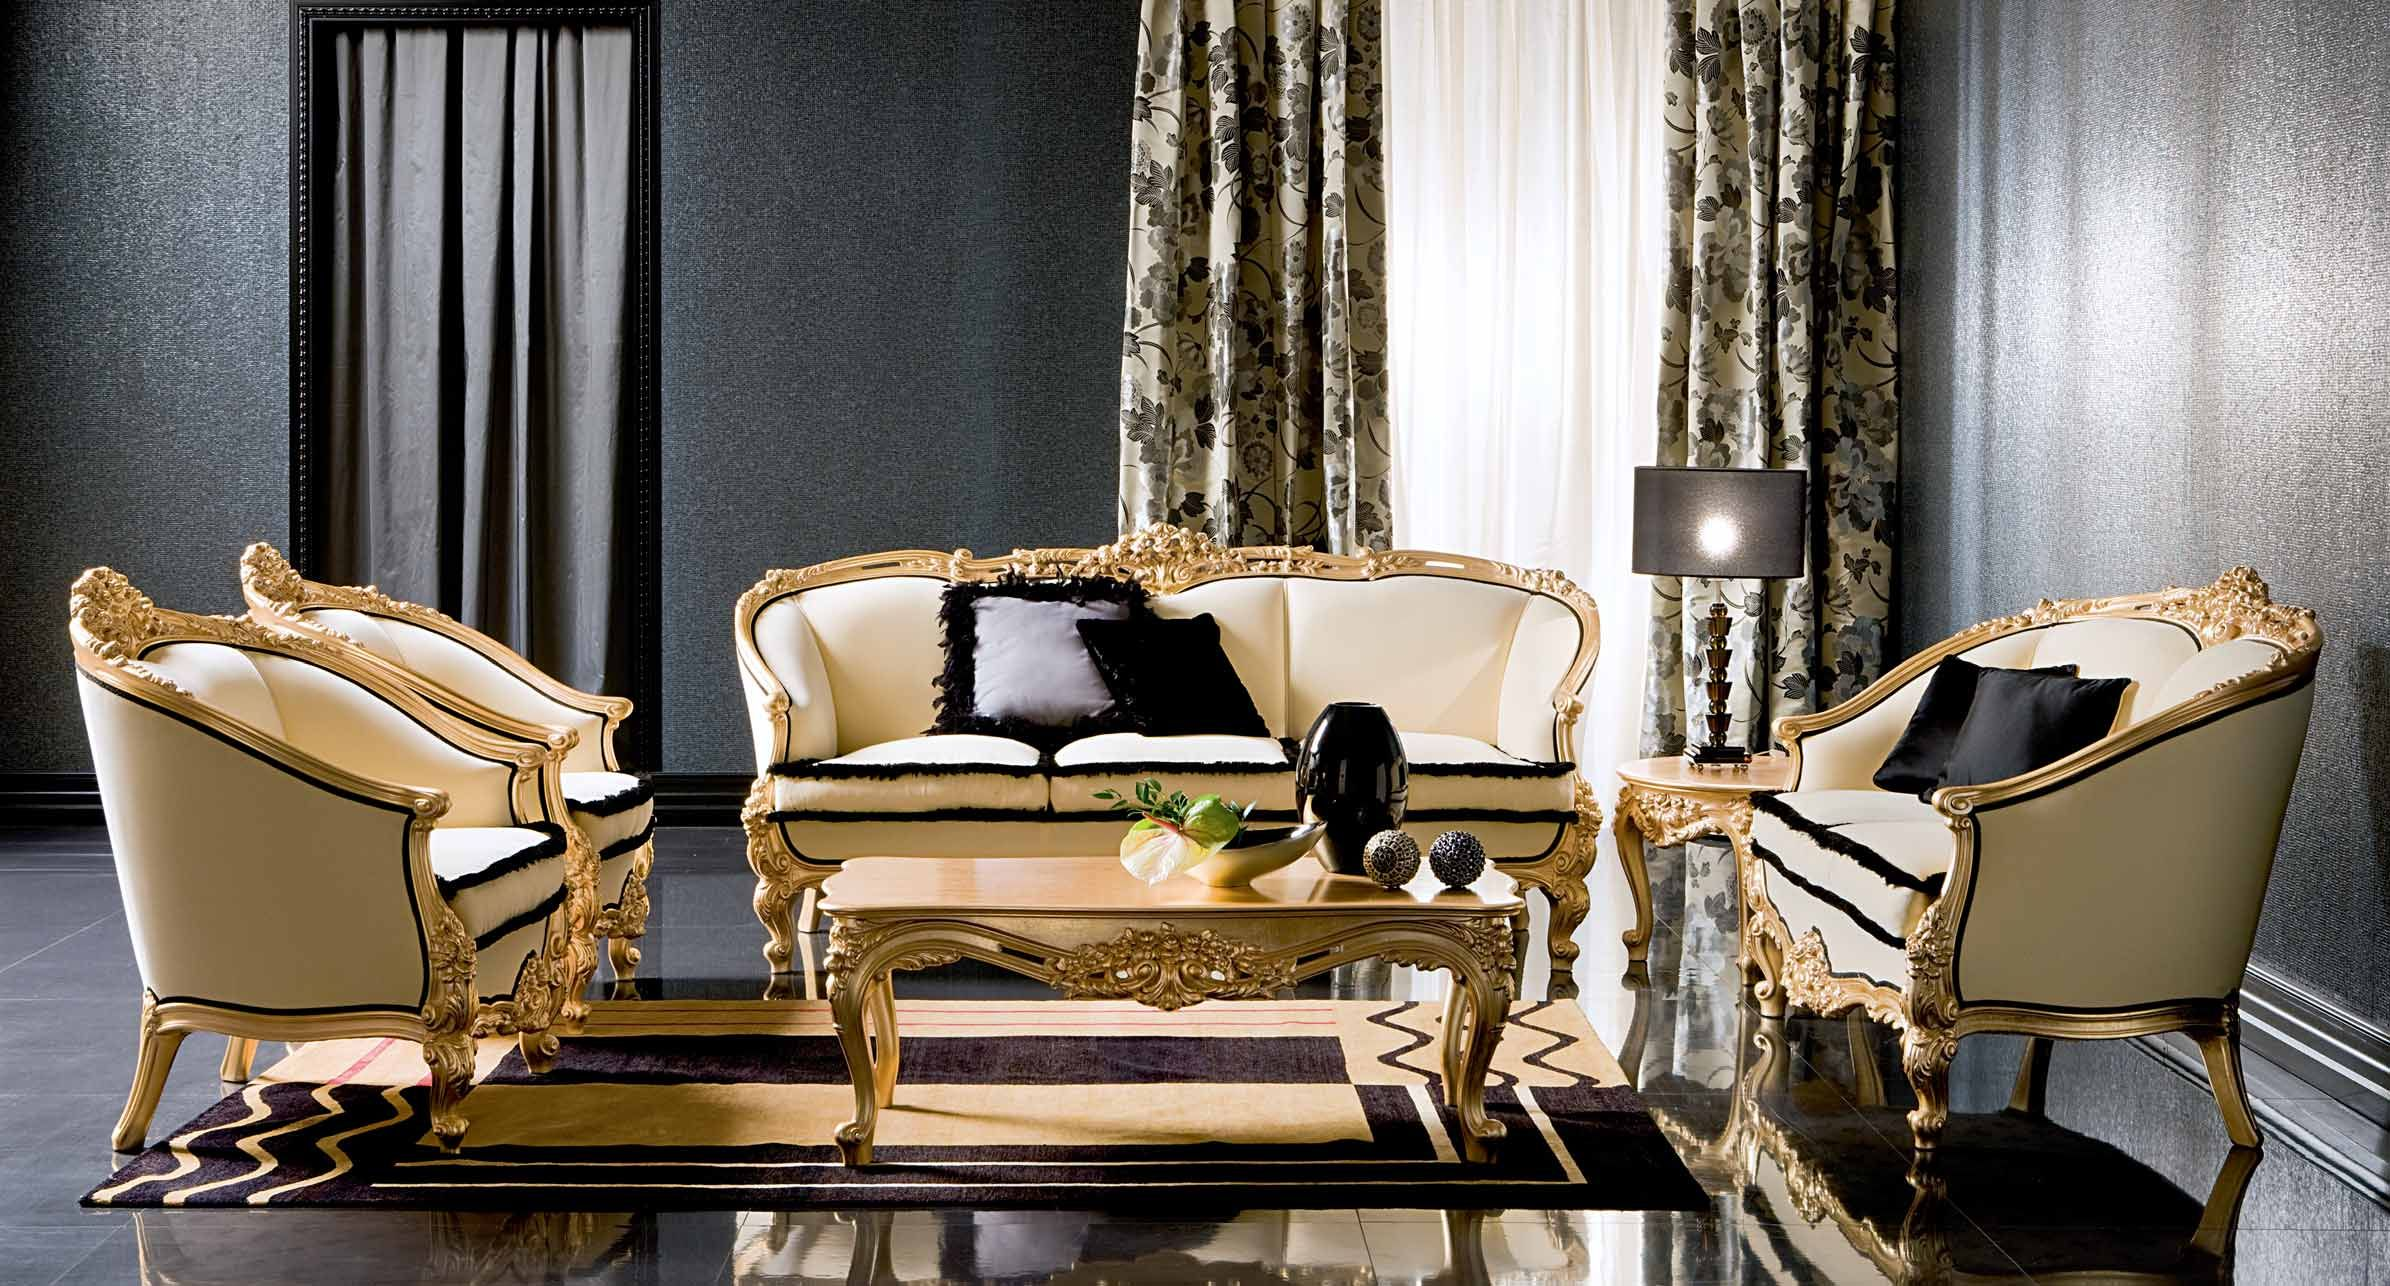 Mondital Luxury Italian Furniture Stores London Uk Luxury Furniture Luxury Living Room Living Room Design Modern